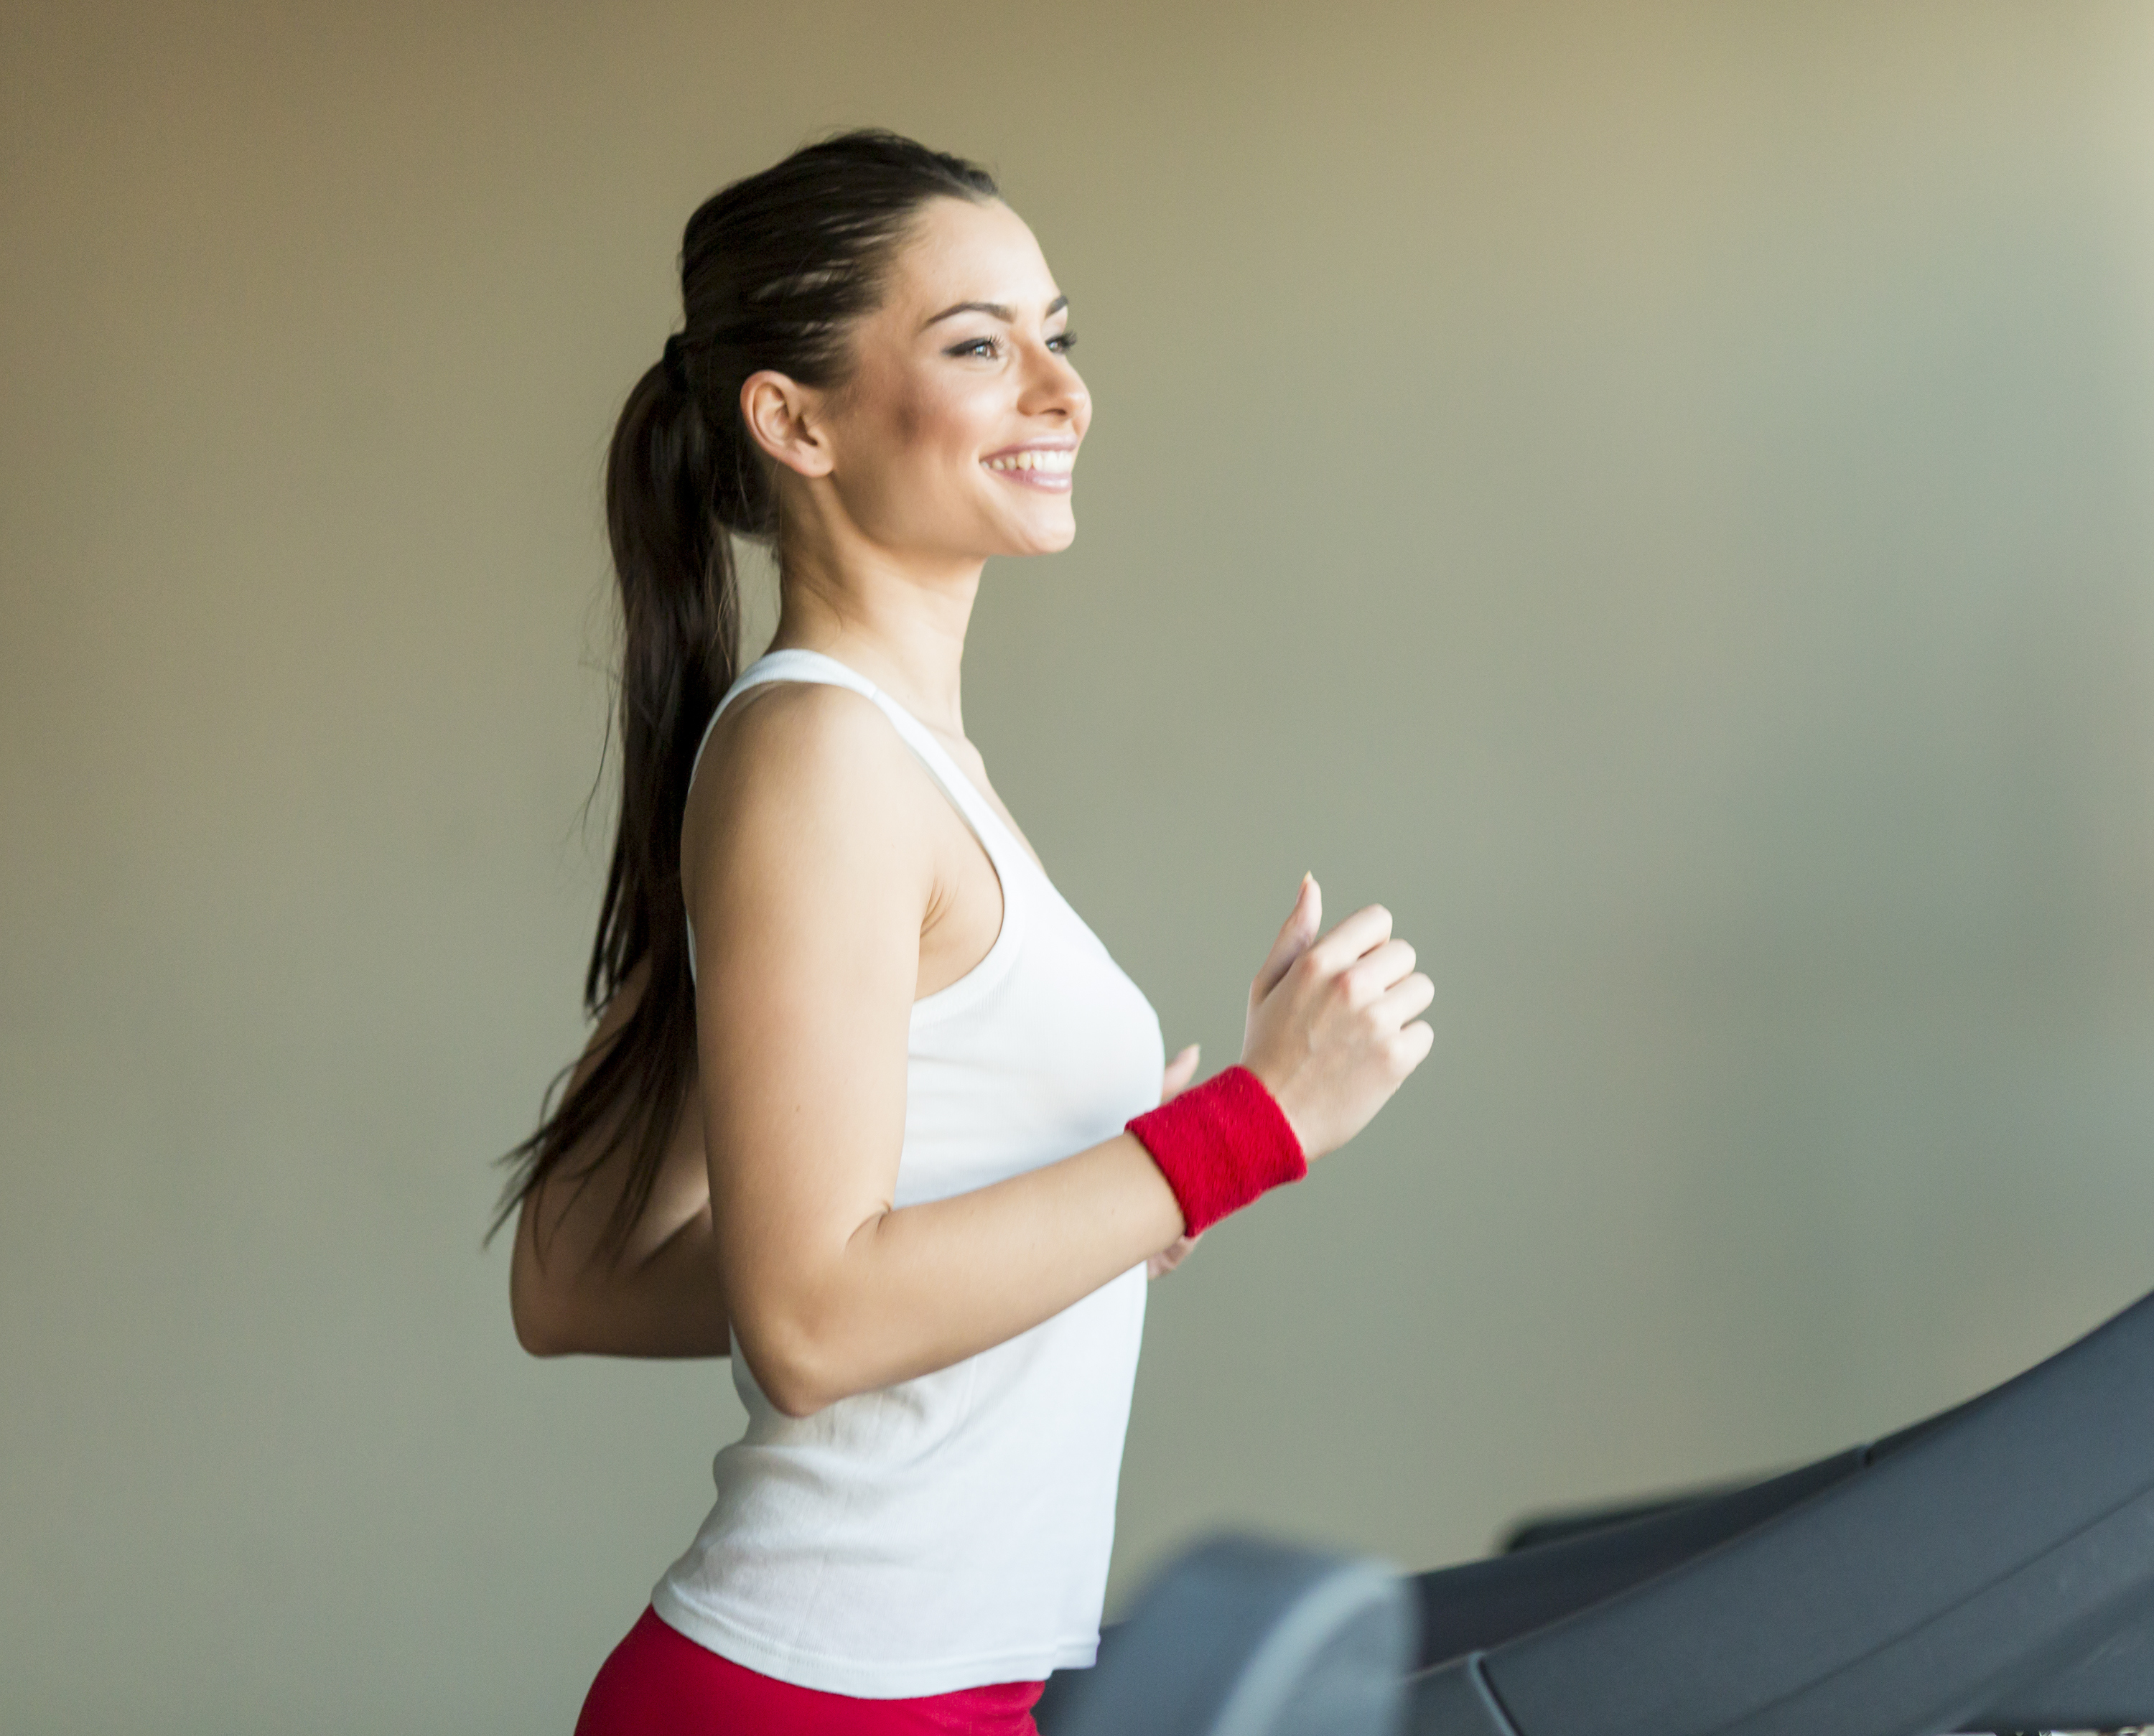 How to Determine If a Treadmill Console Is Broken?